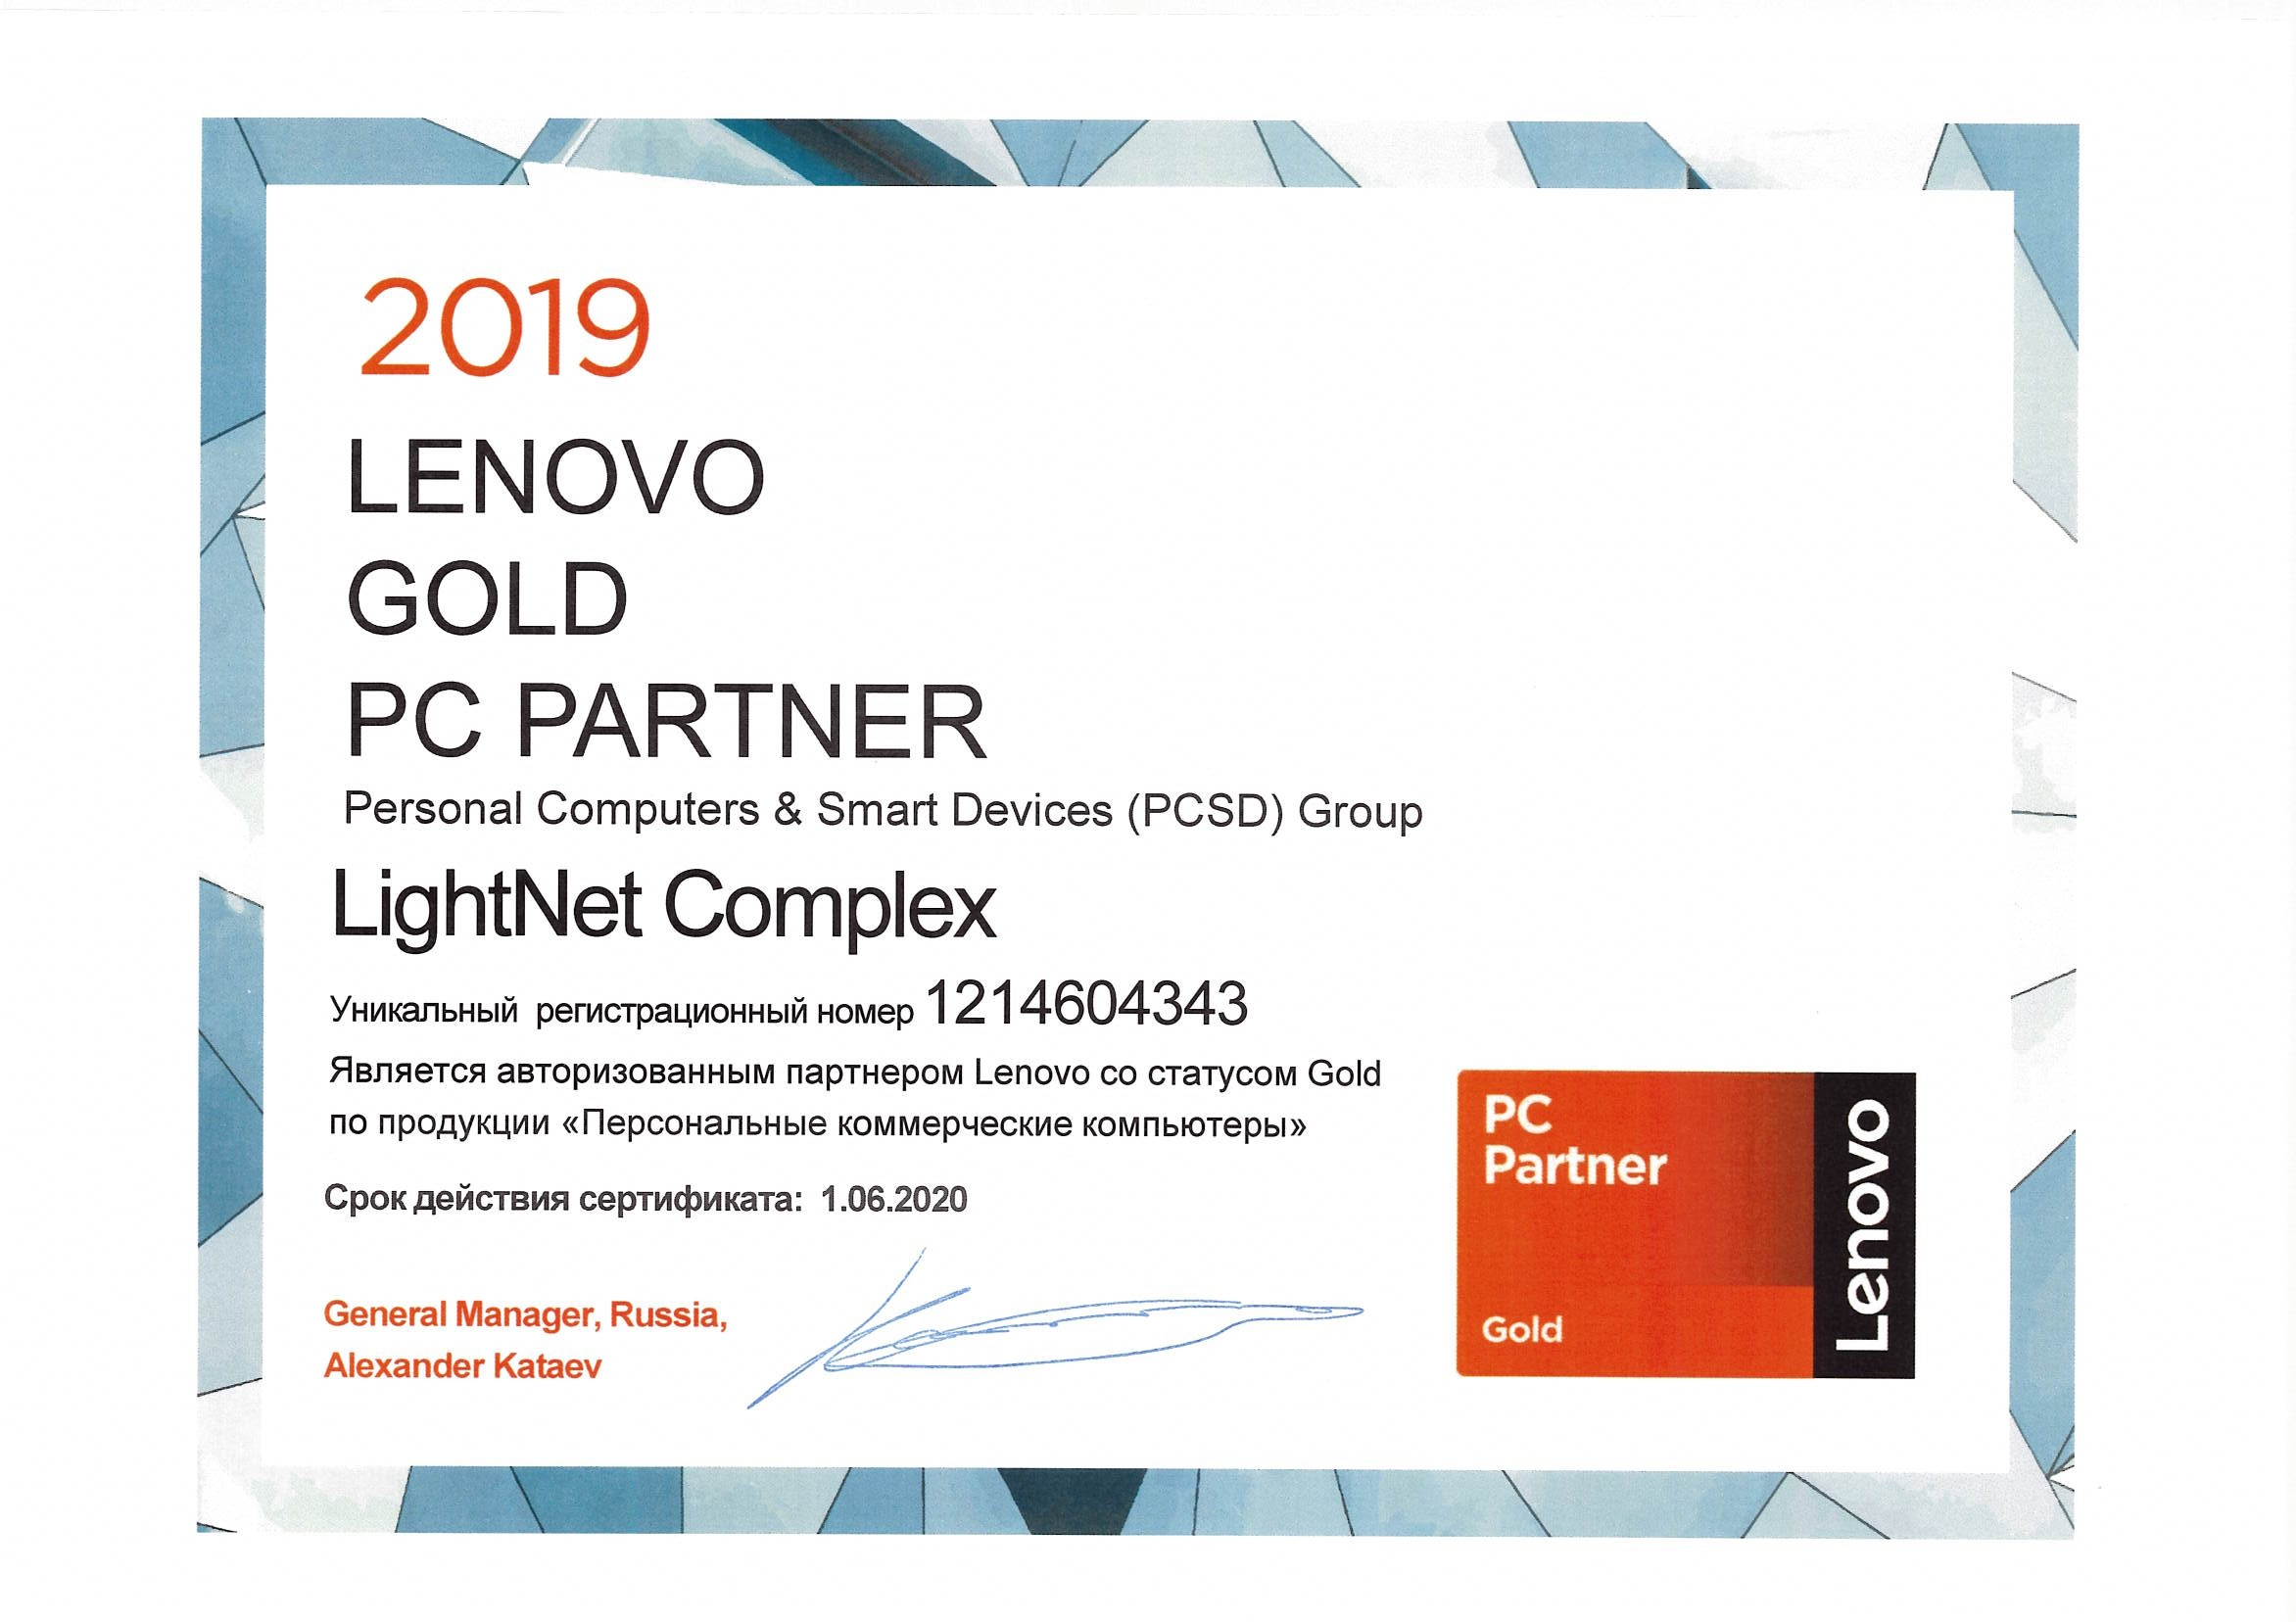 Lenovo - Gold PC Partner (Personal computers & Smart Devices (PCSD) Group)